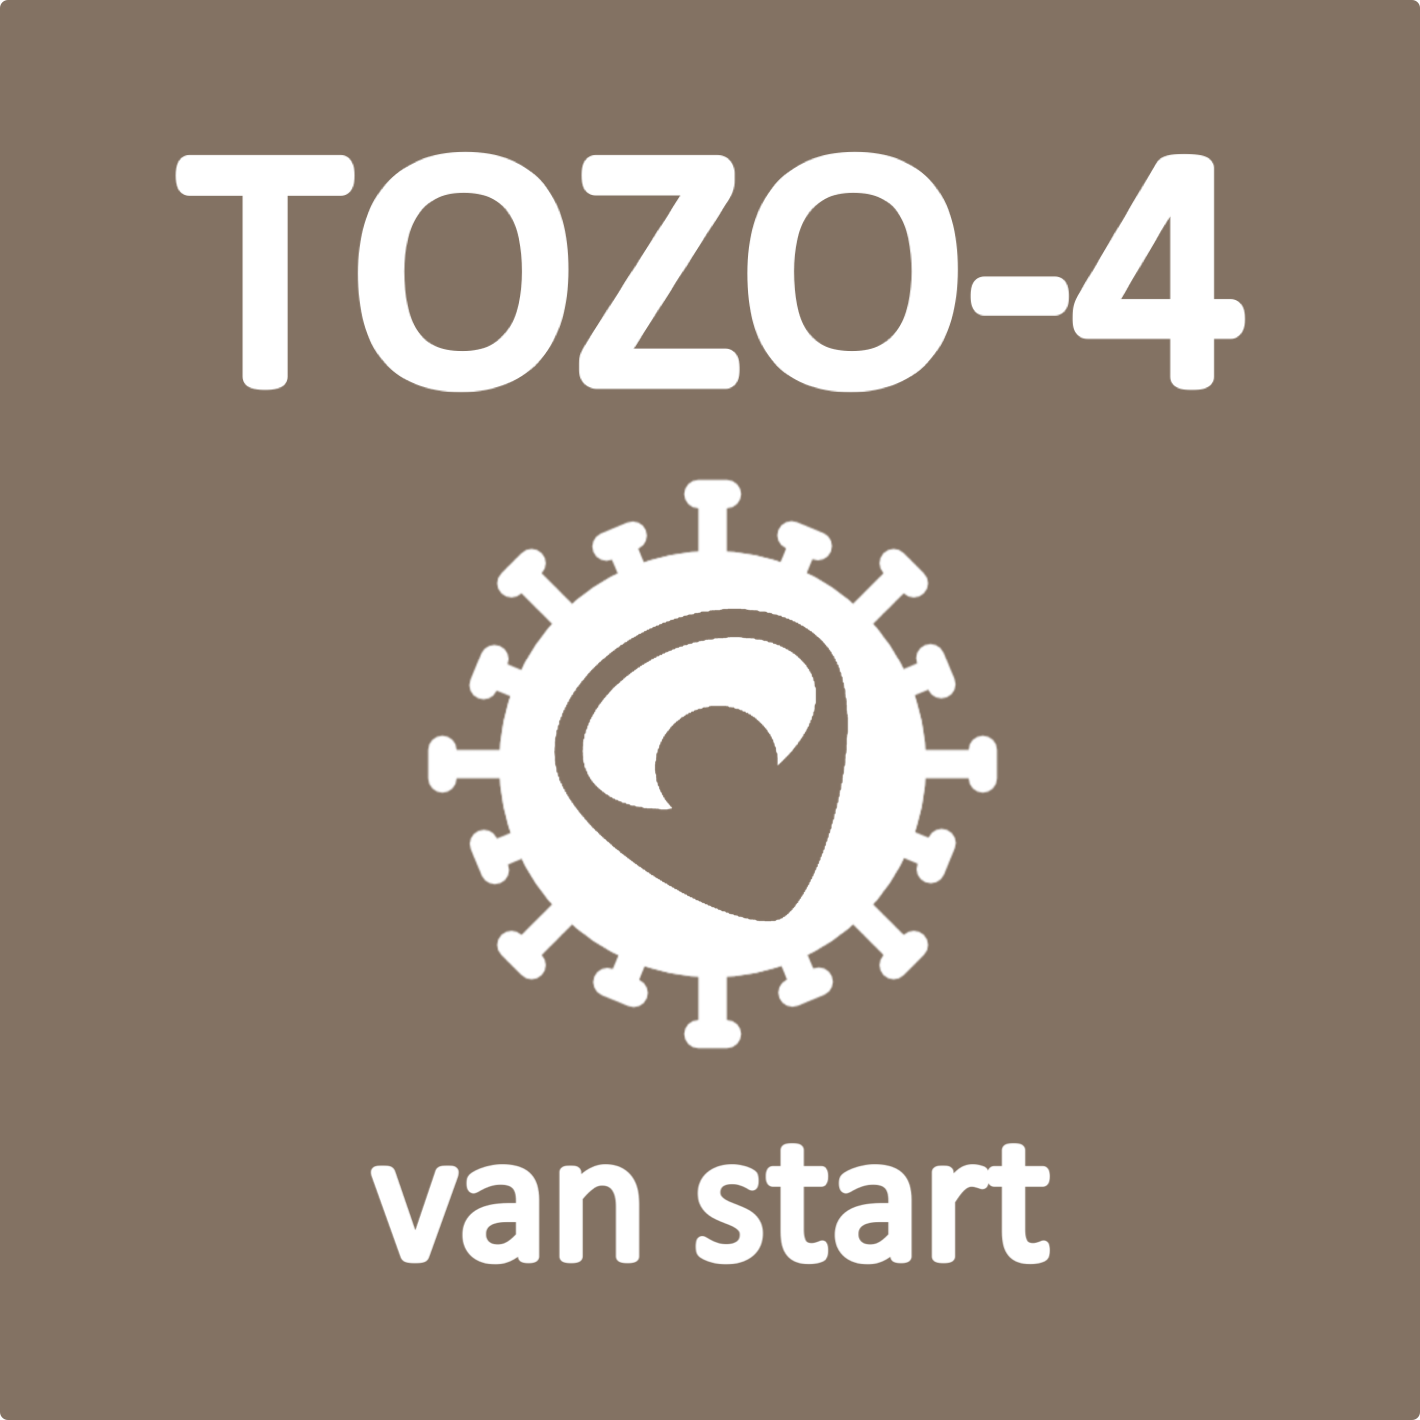 Tozo-4 is van start gegaan